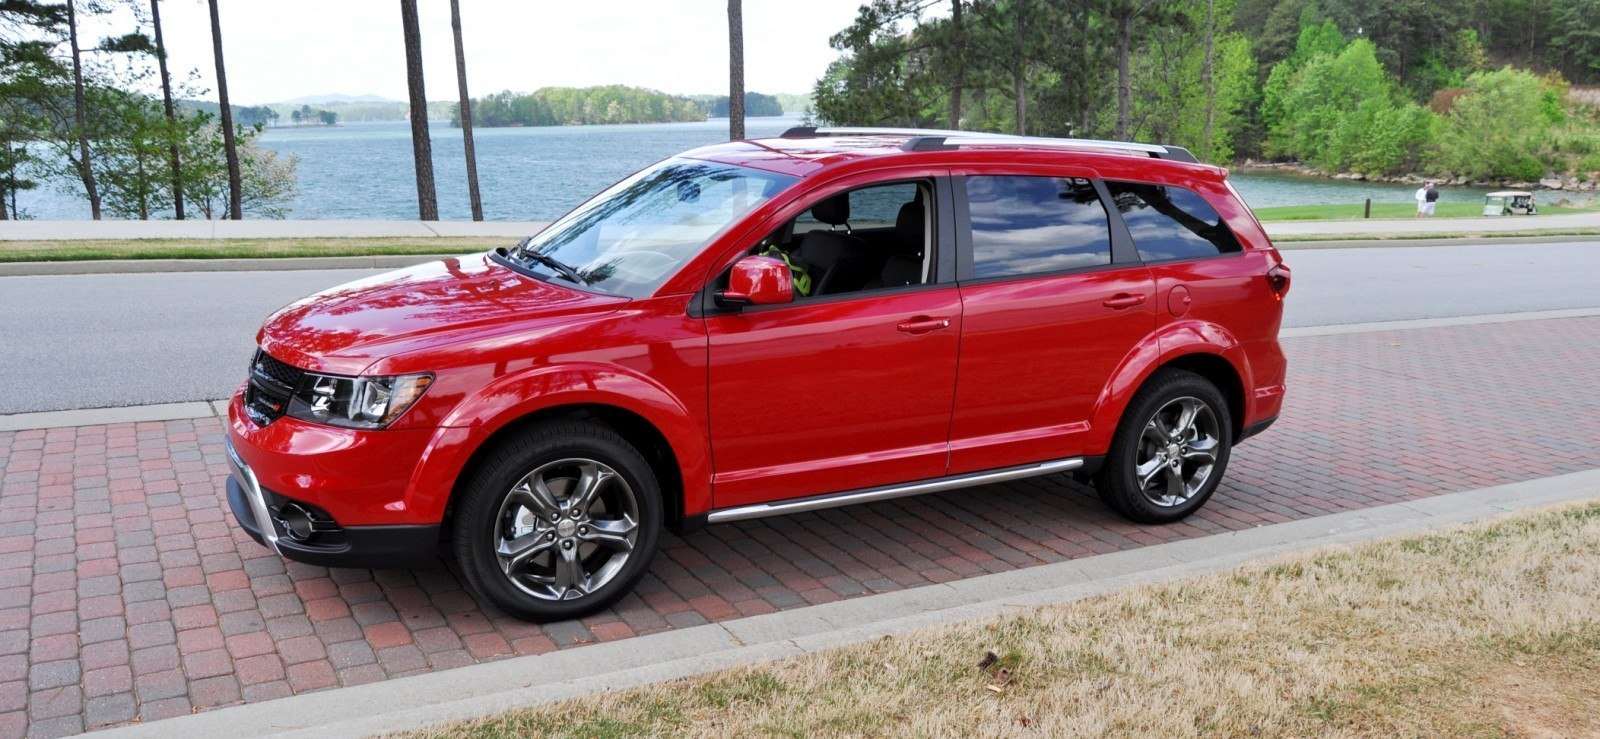 Road Test Review - 2014 Dodge Journey Crossroad - We Would Cross the Road to Avoid 28